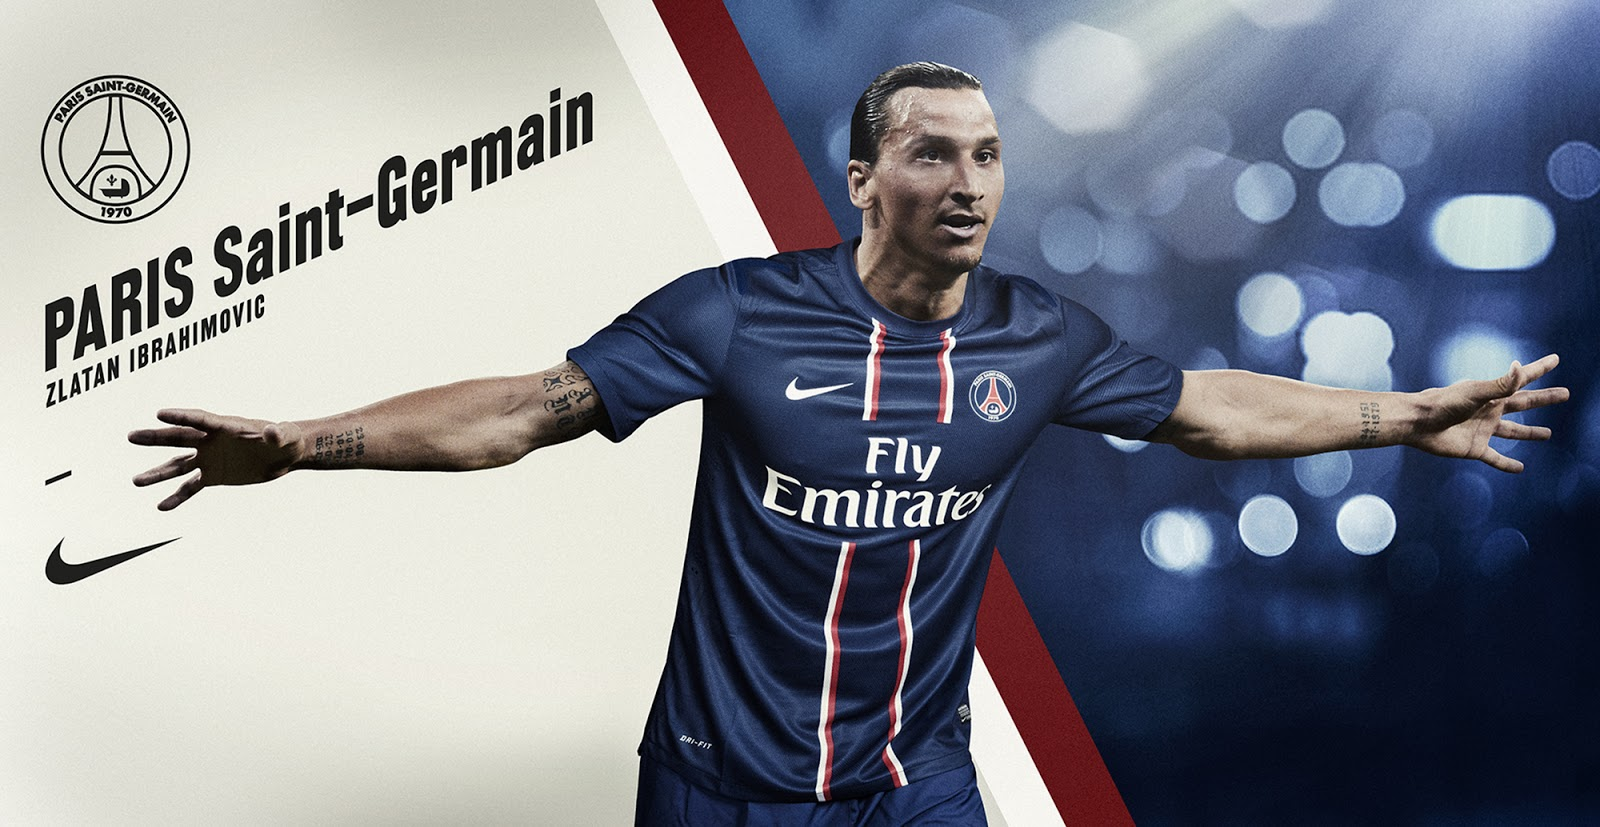 Wallpapers PSG 2013 2 HD FULL HD High Definition Wallpapers 1600x827